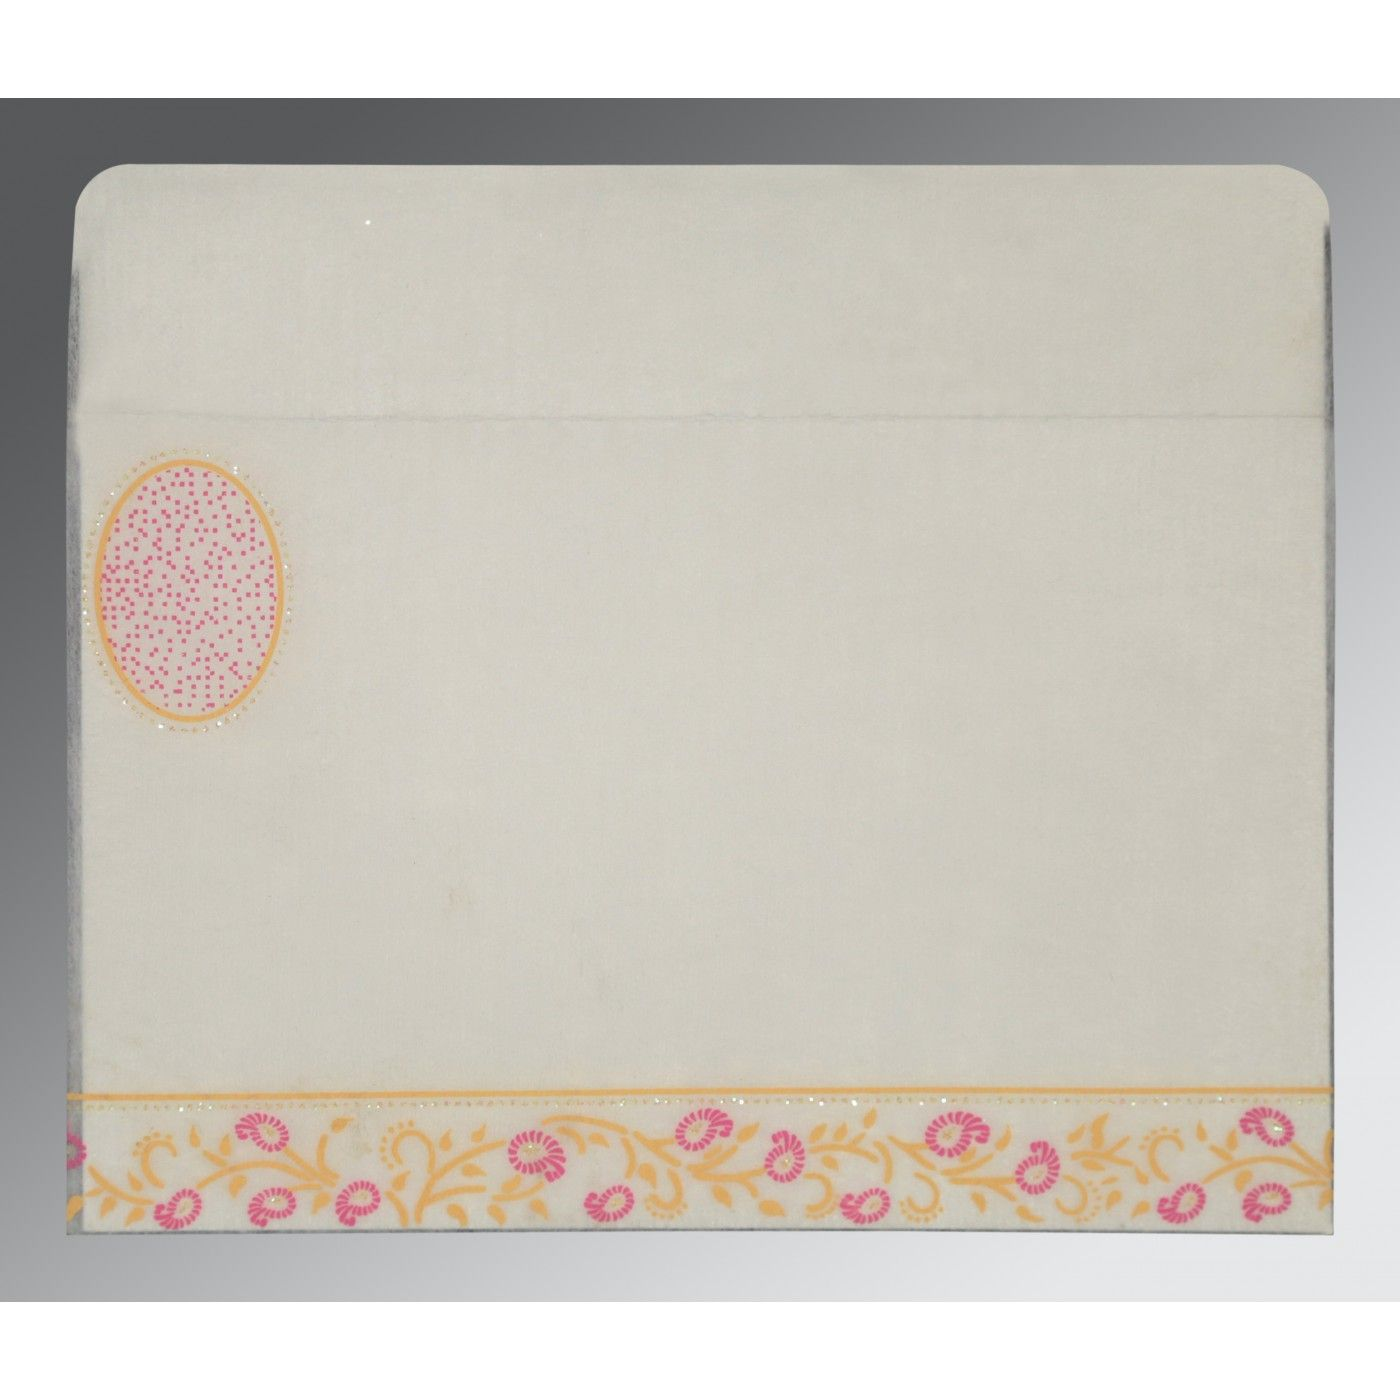 OFF-WHITE WOOLY FLORAL THEMED - GLITTER WEDDING CARD : CD-8206F - IndianWeddingCards